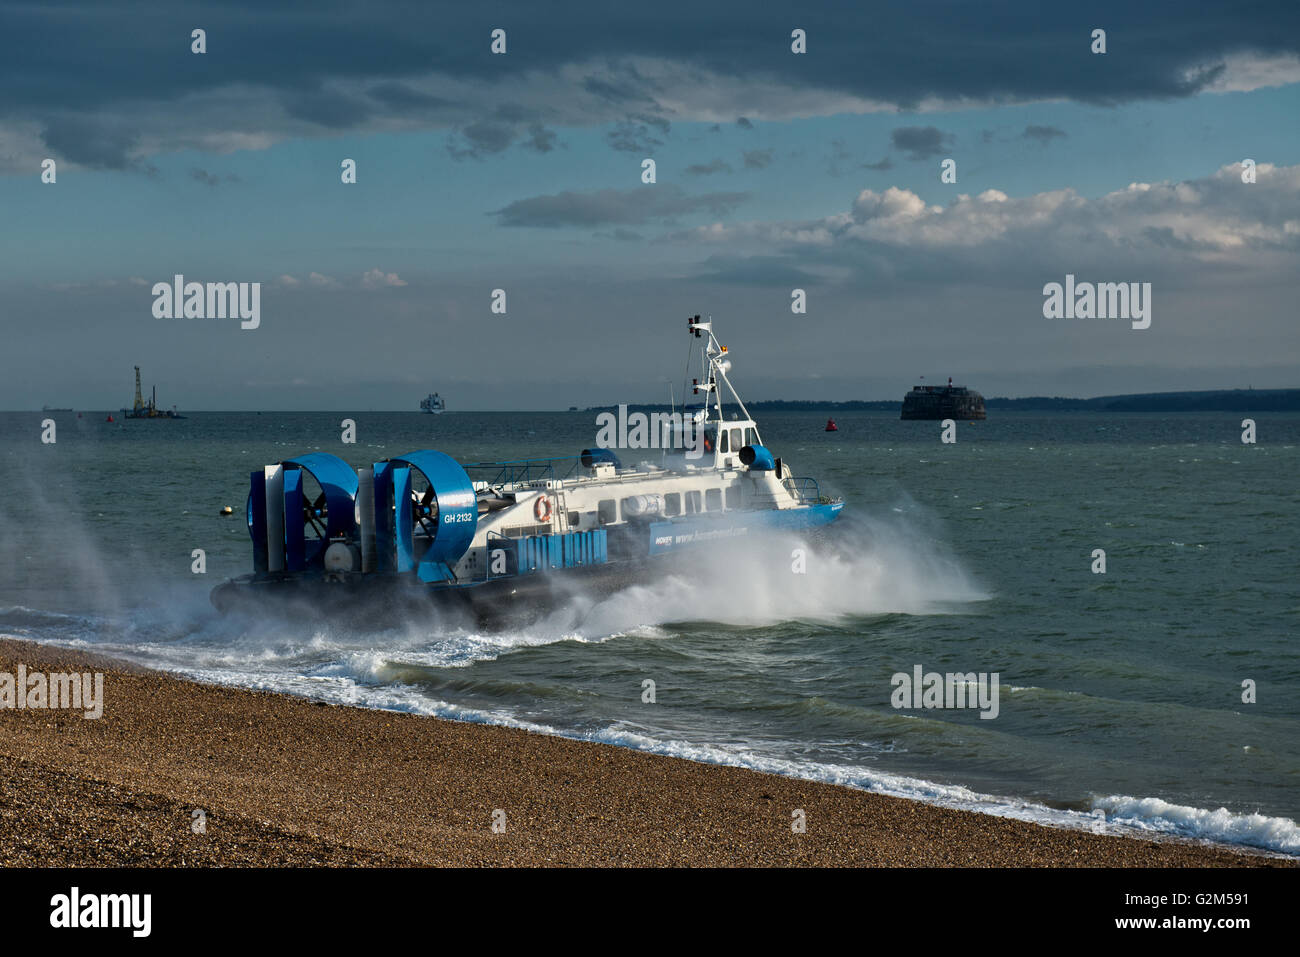 Hovercraft, AP1-88 – Island Express owned Hovertravel traveling to Ryde, Isle of Wight, UK Stock Photo